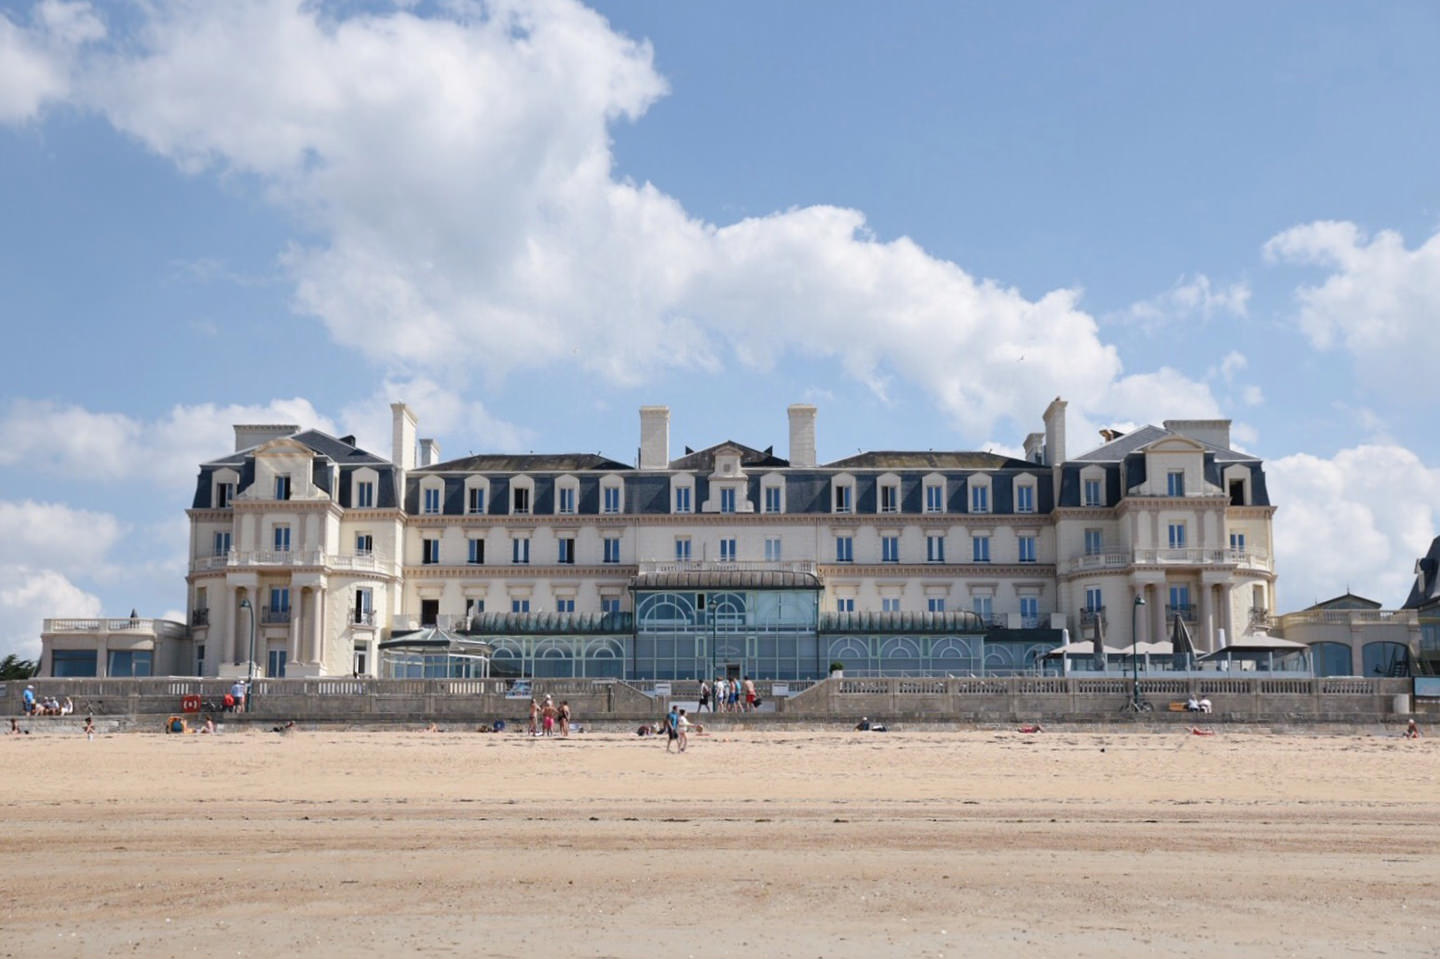 Blog-Mode-And-The-City-Lifestyle-Cinq-Petites-Choses-222-thermes-saint-malo